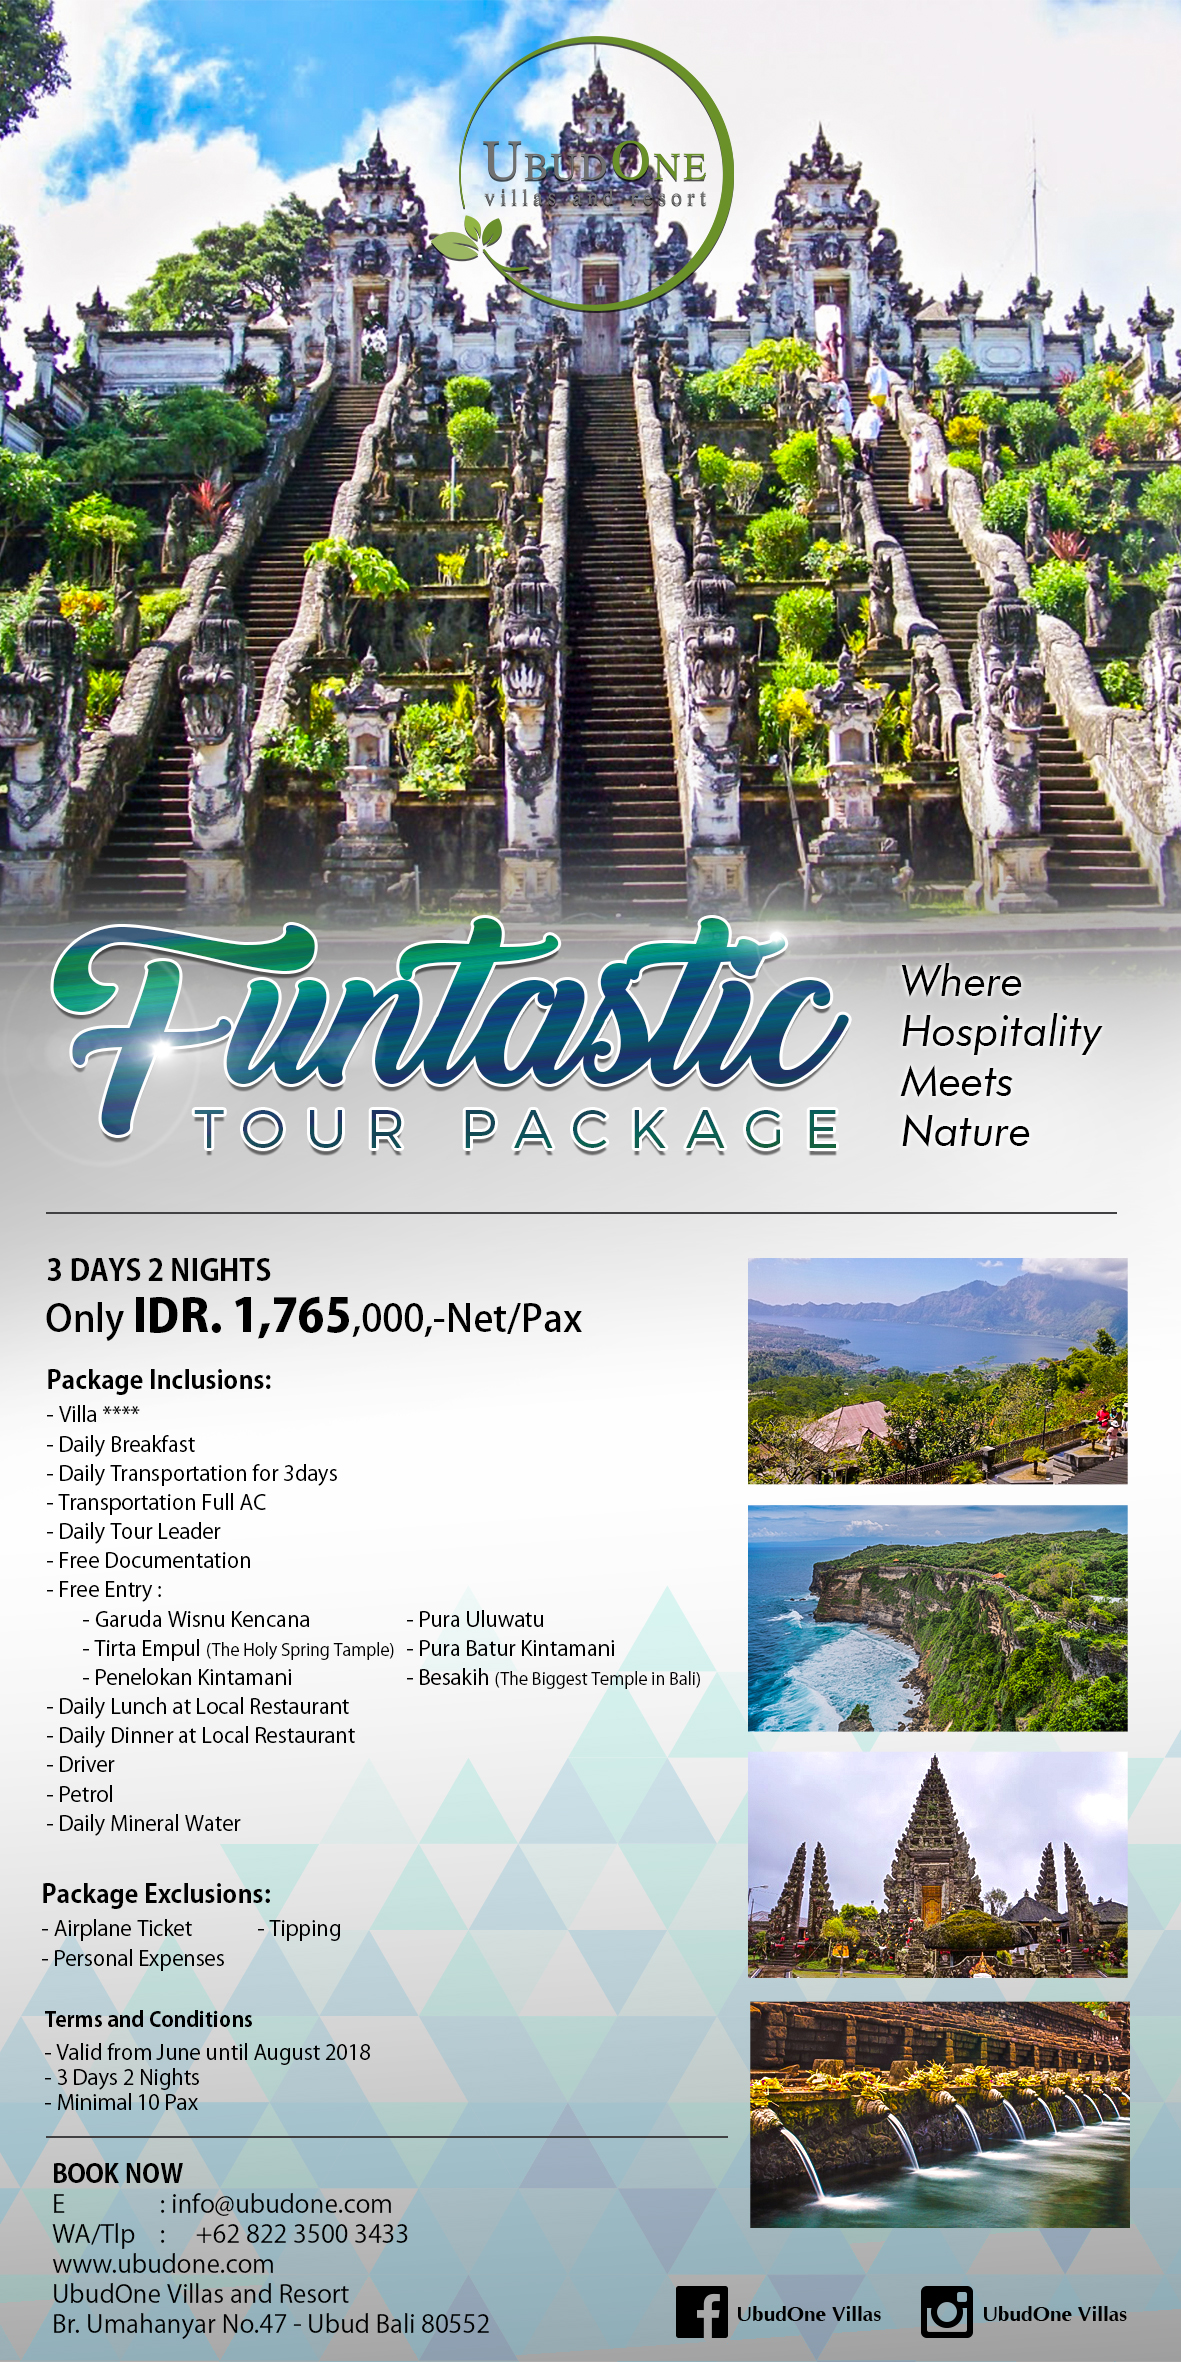 FANTASTIC TOUR PACKAGE